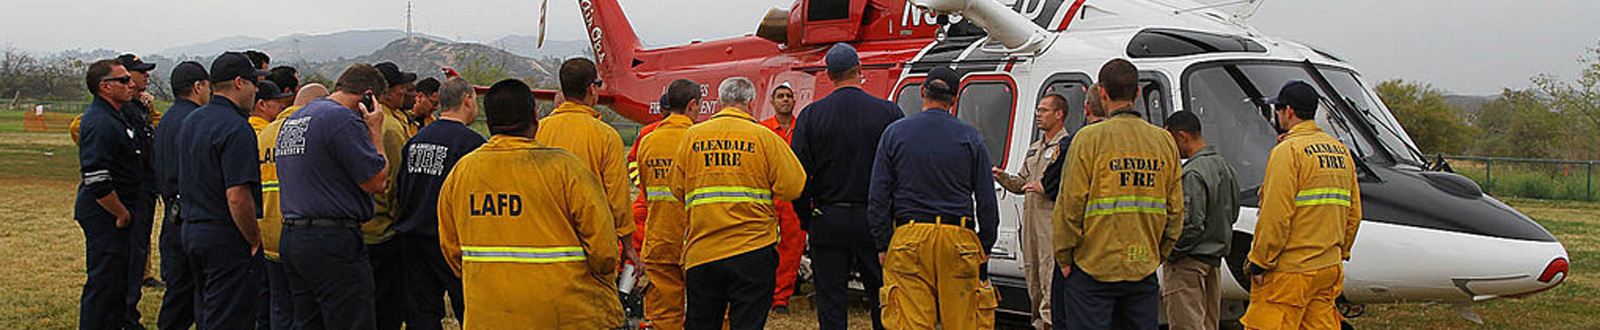 An LAFD team meet in front of an LAFD helicopter